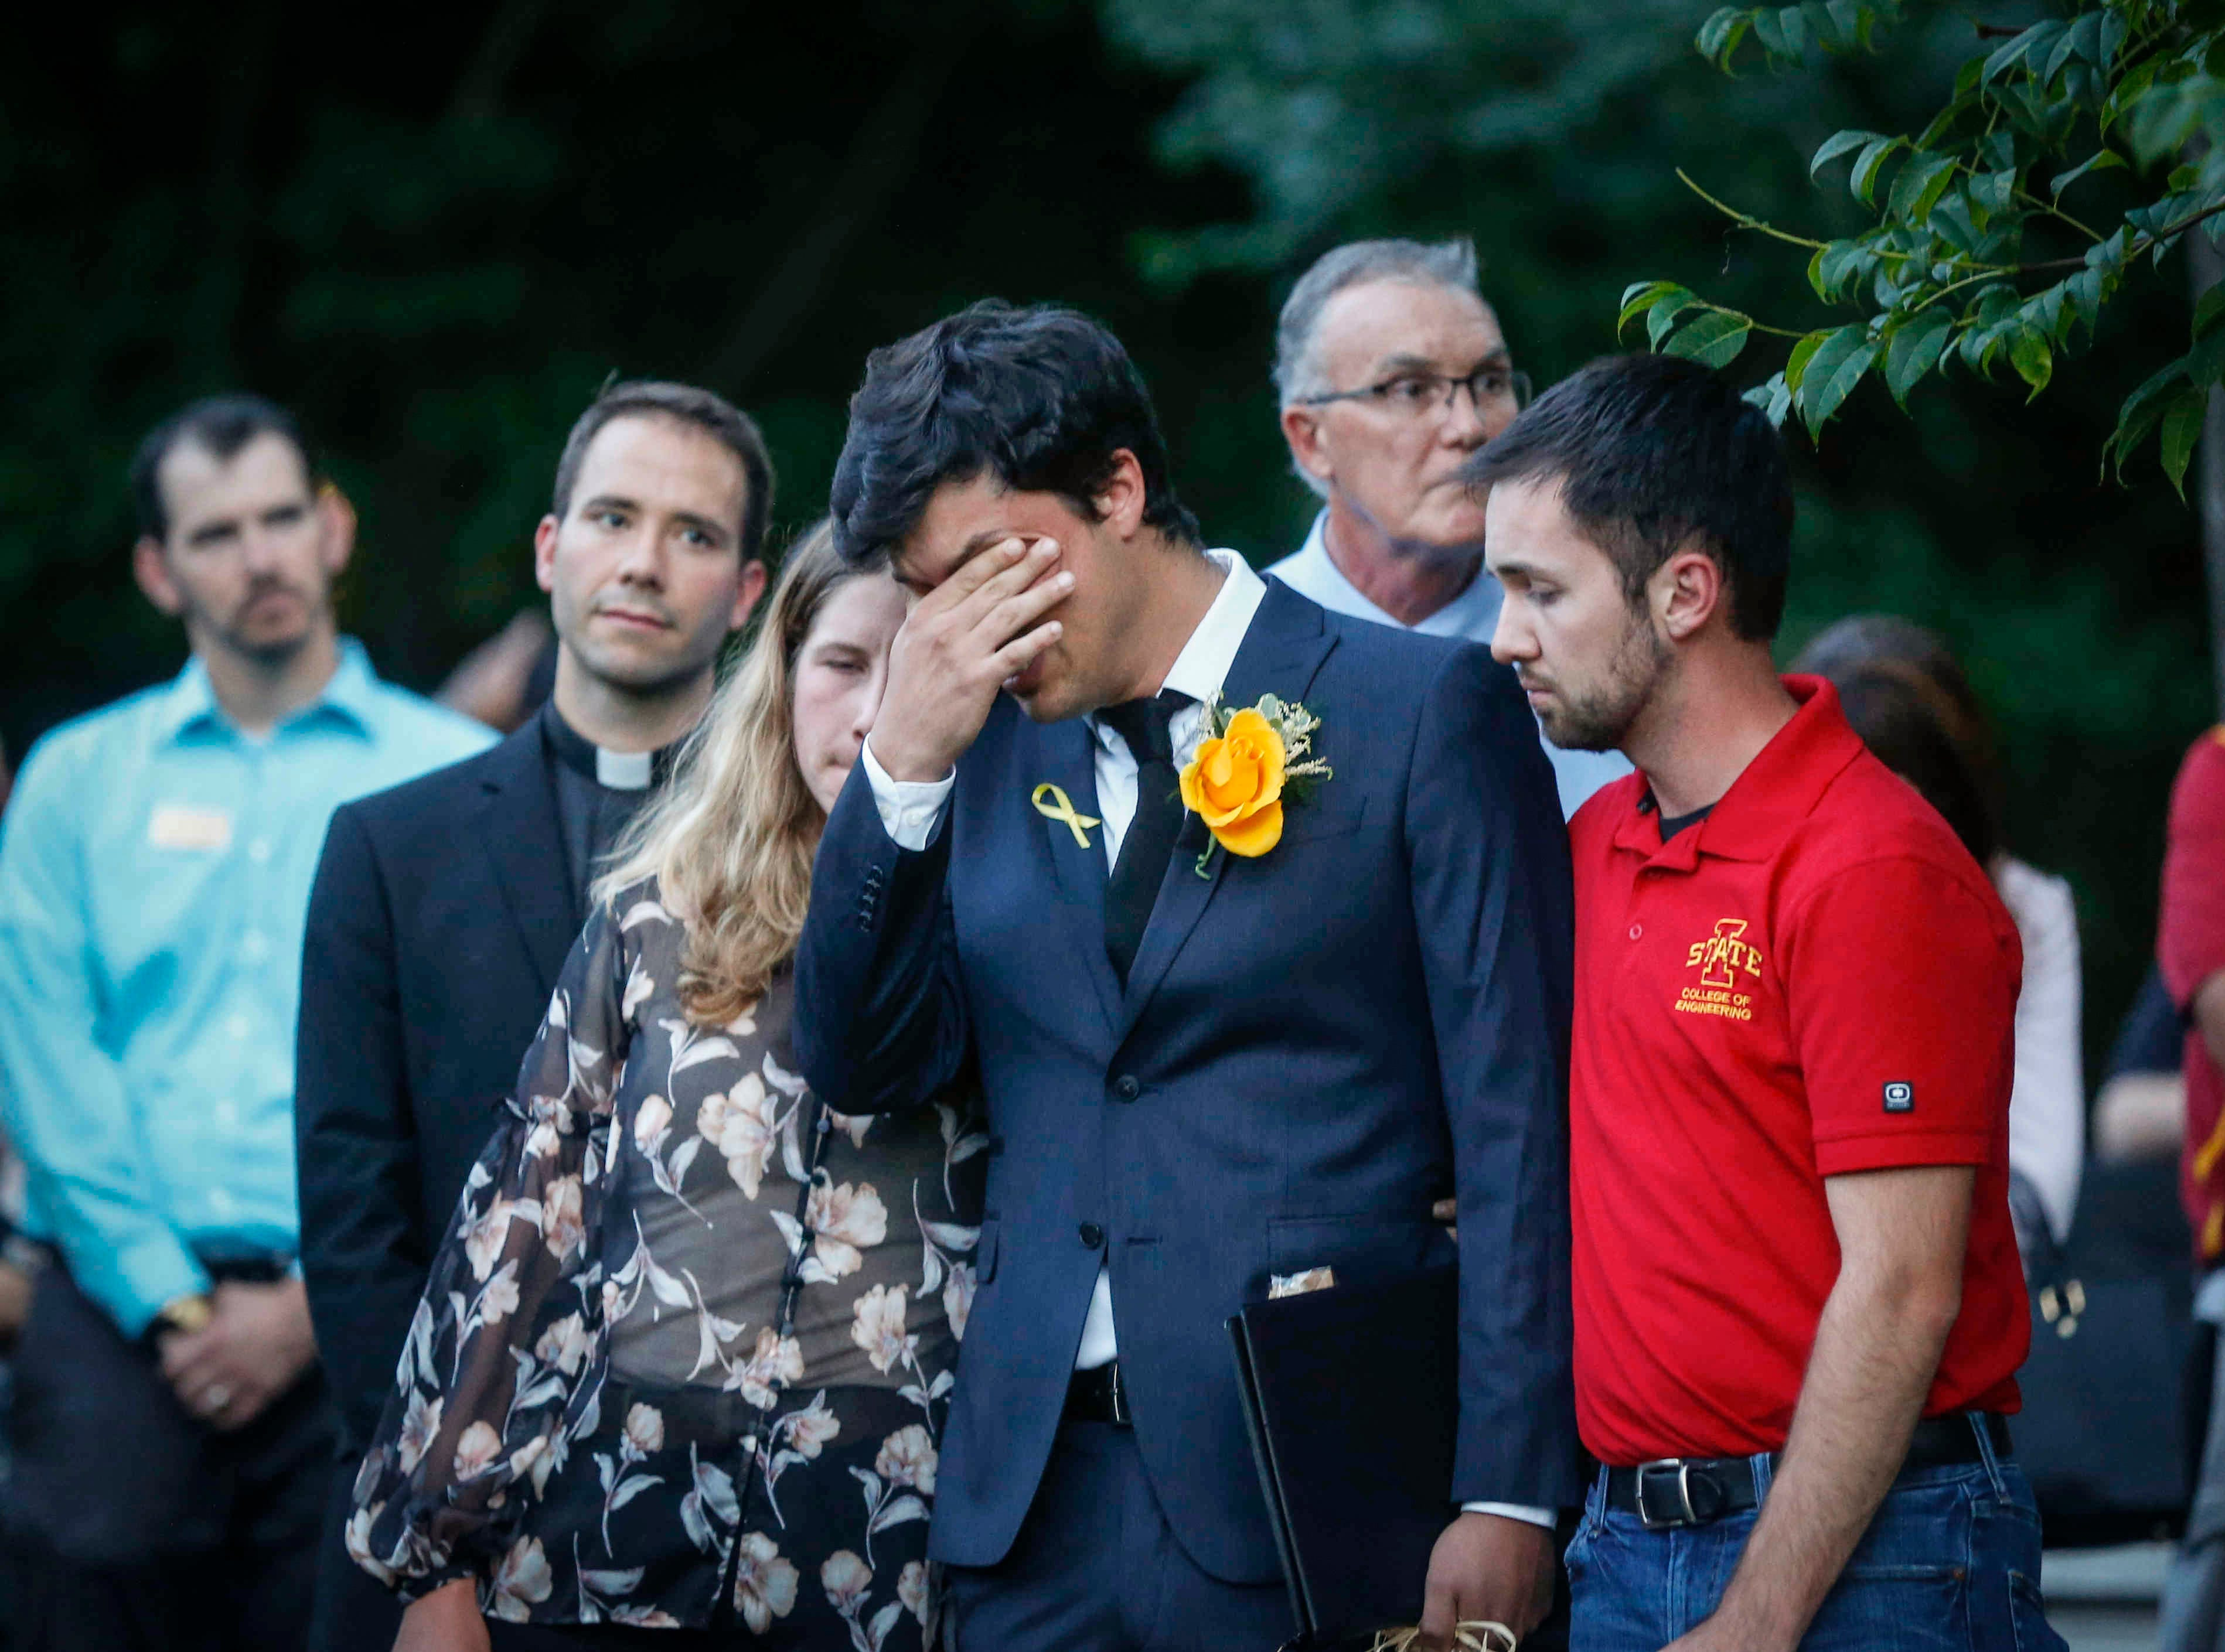 Carlos Negrin Bola–os, boyfriend of Iowa State student Celia Barquin Arozamena, wipes tears as students, faculty and community members mourn Arozamena during a vigil on Wednesday, Sept. 19, 2018, in Ames.